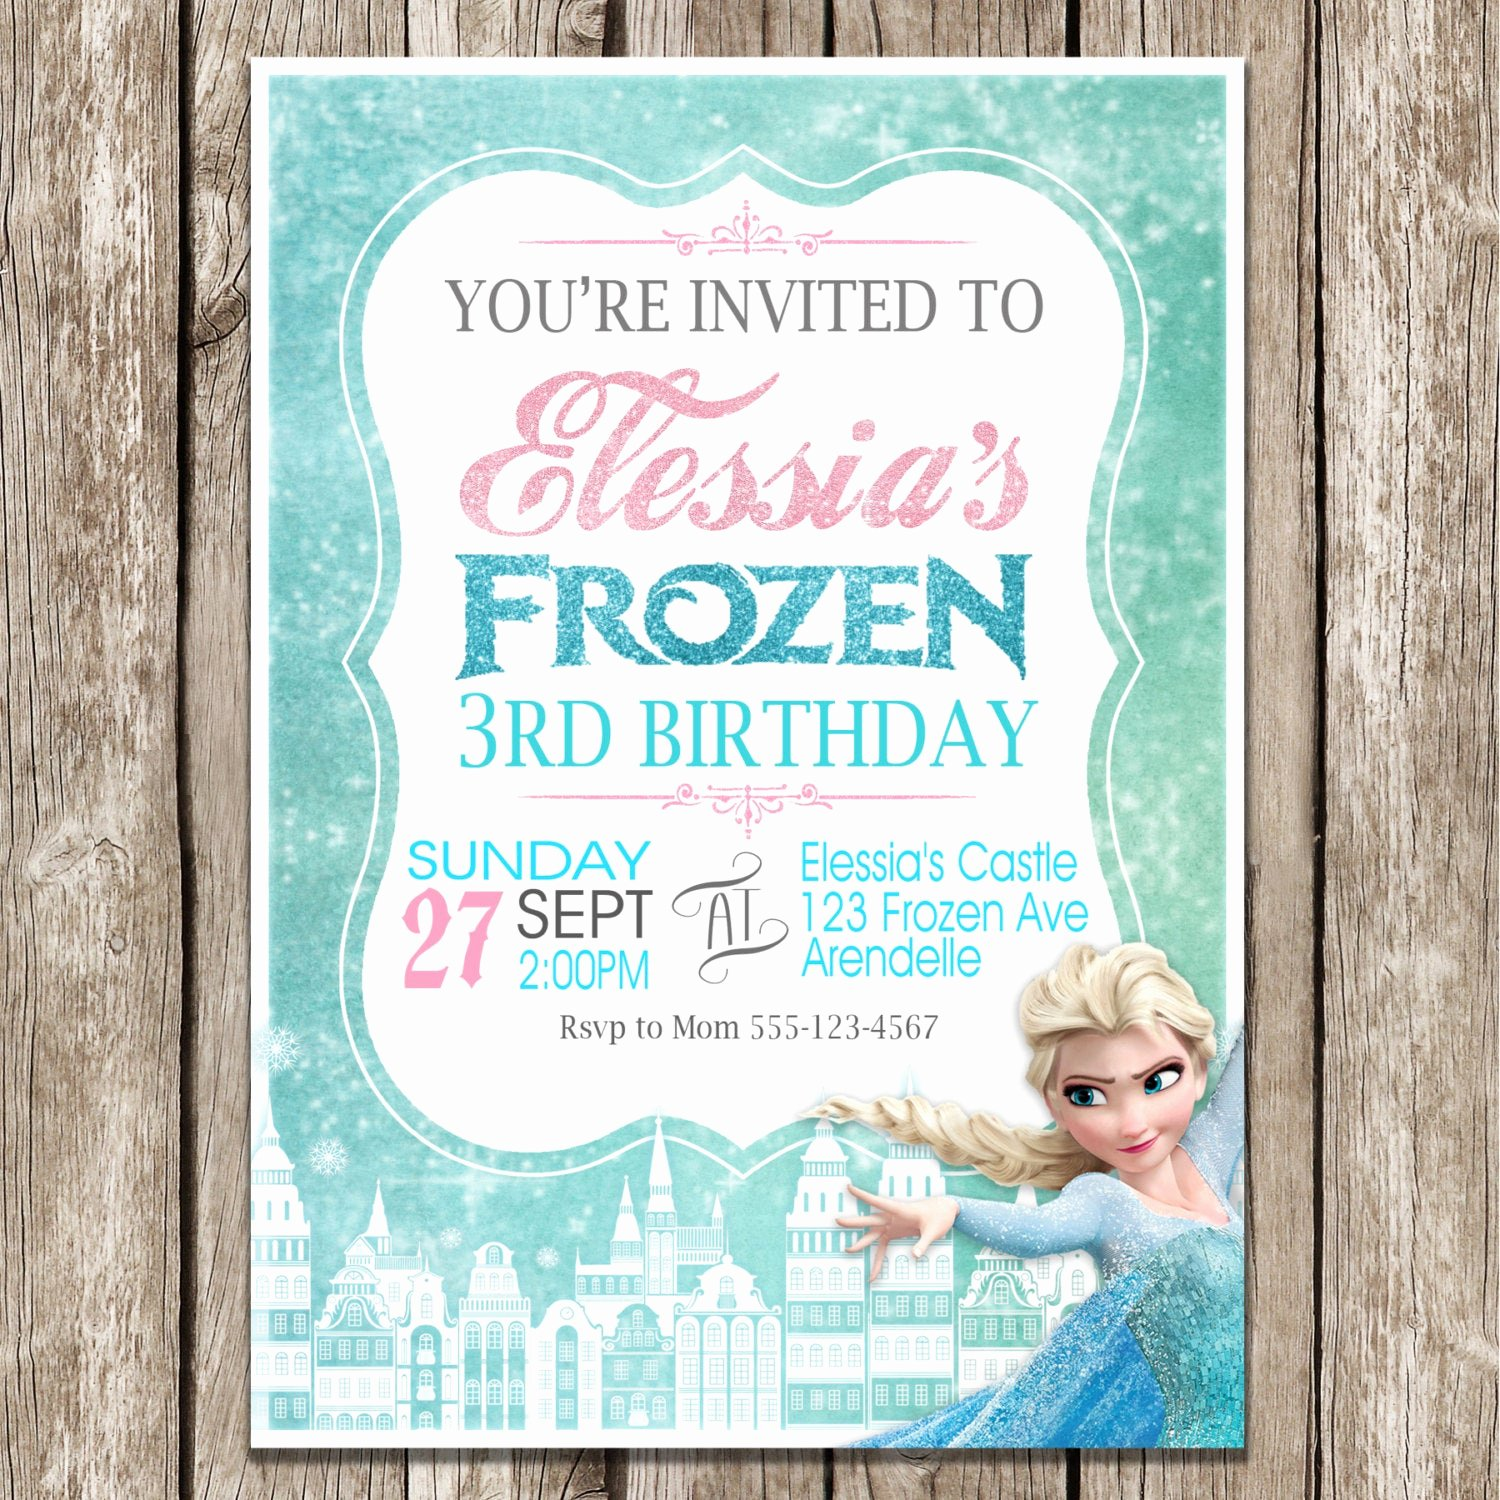 Frozen Birthday Invitations Free Inspirational Frozen Birthday Invitation Frozen Birthday Party Diy